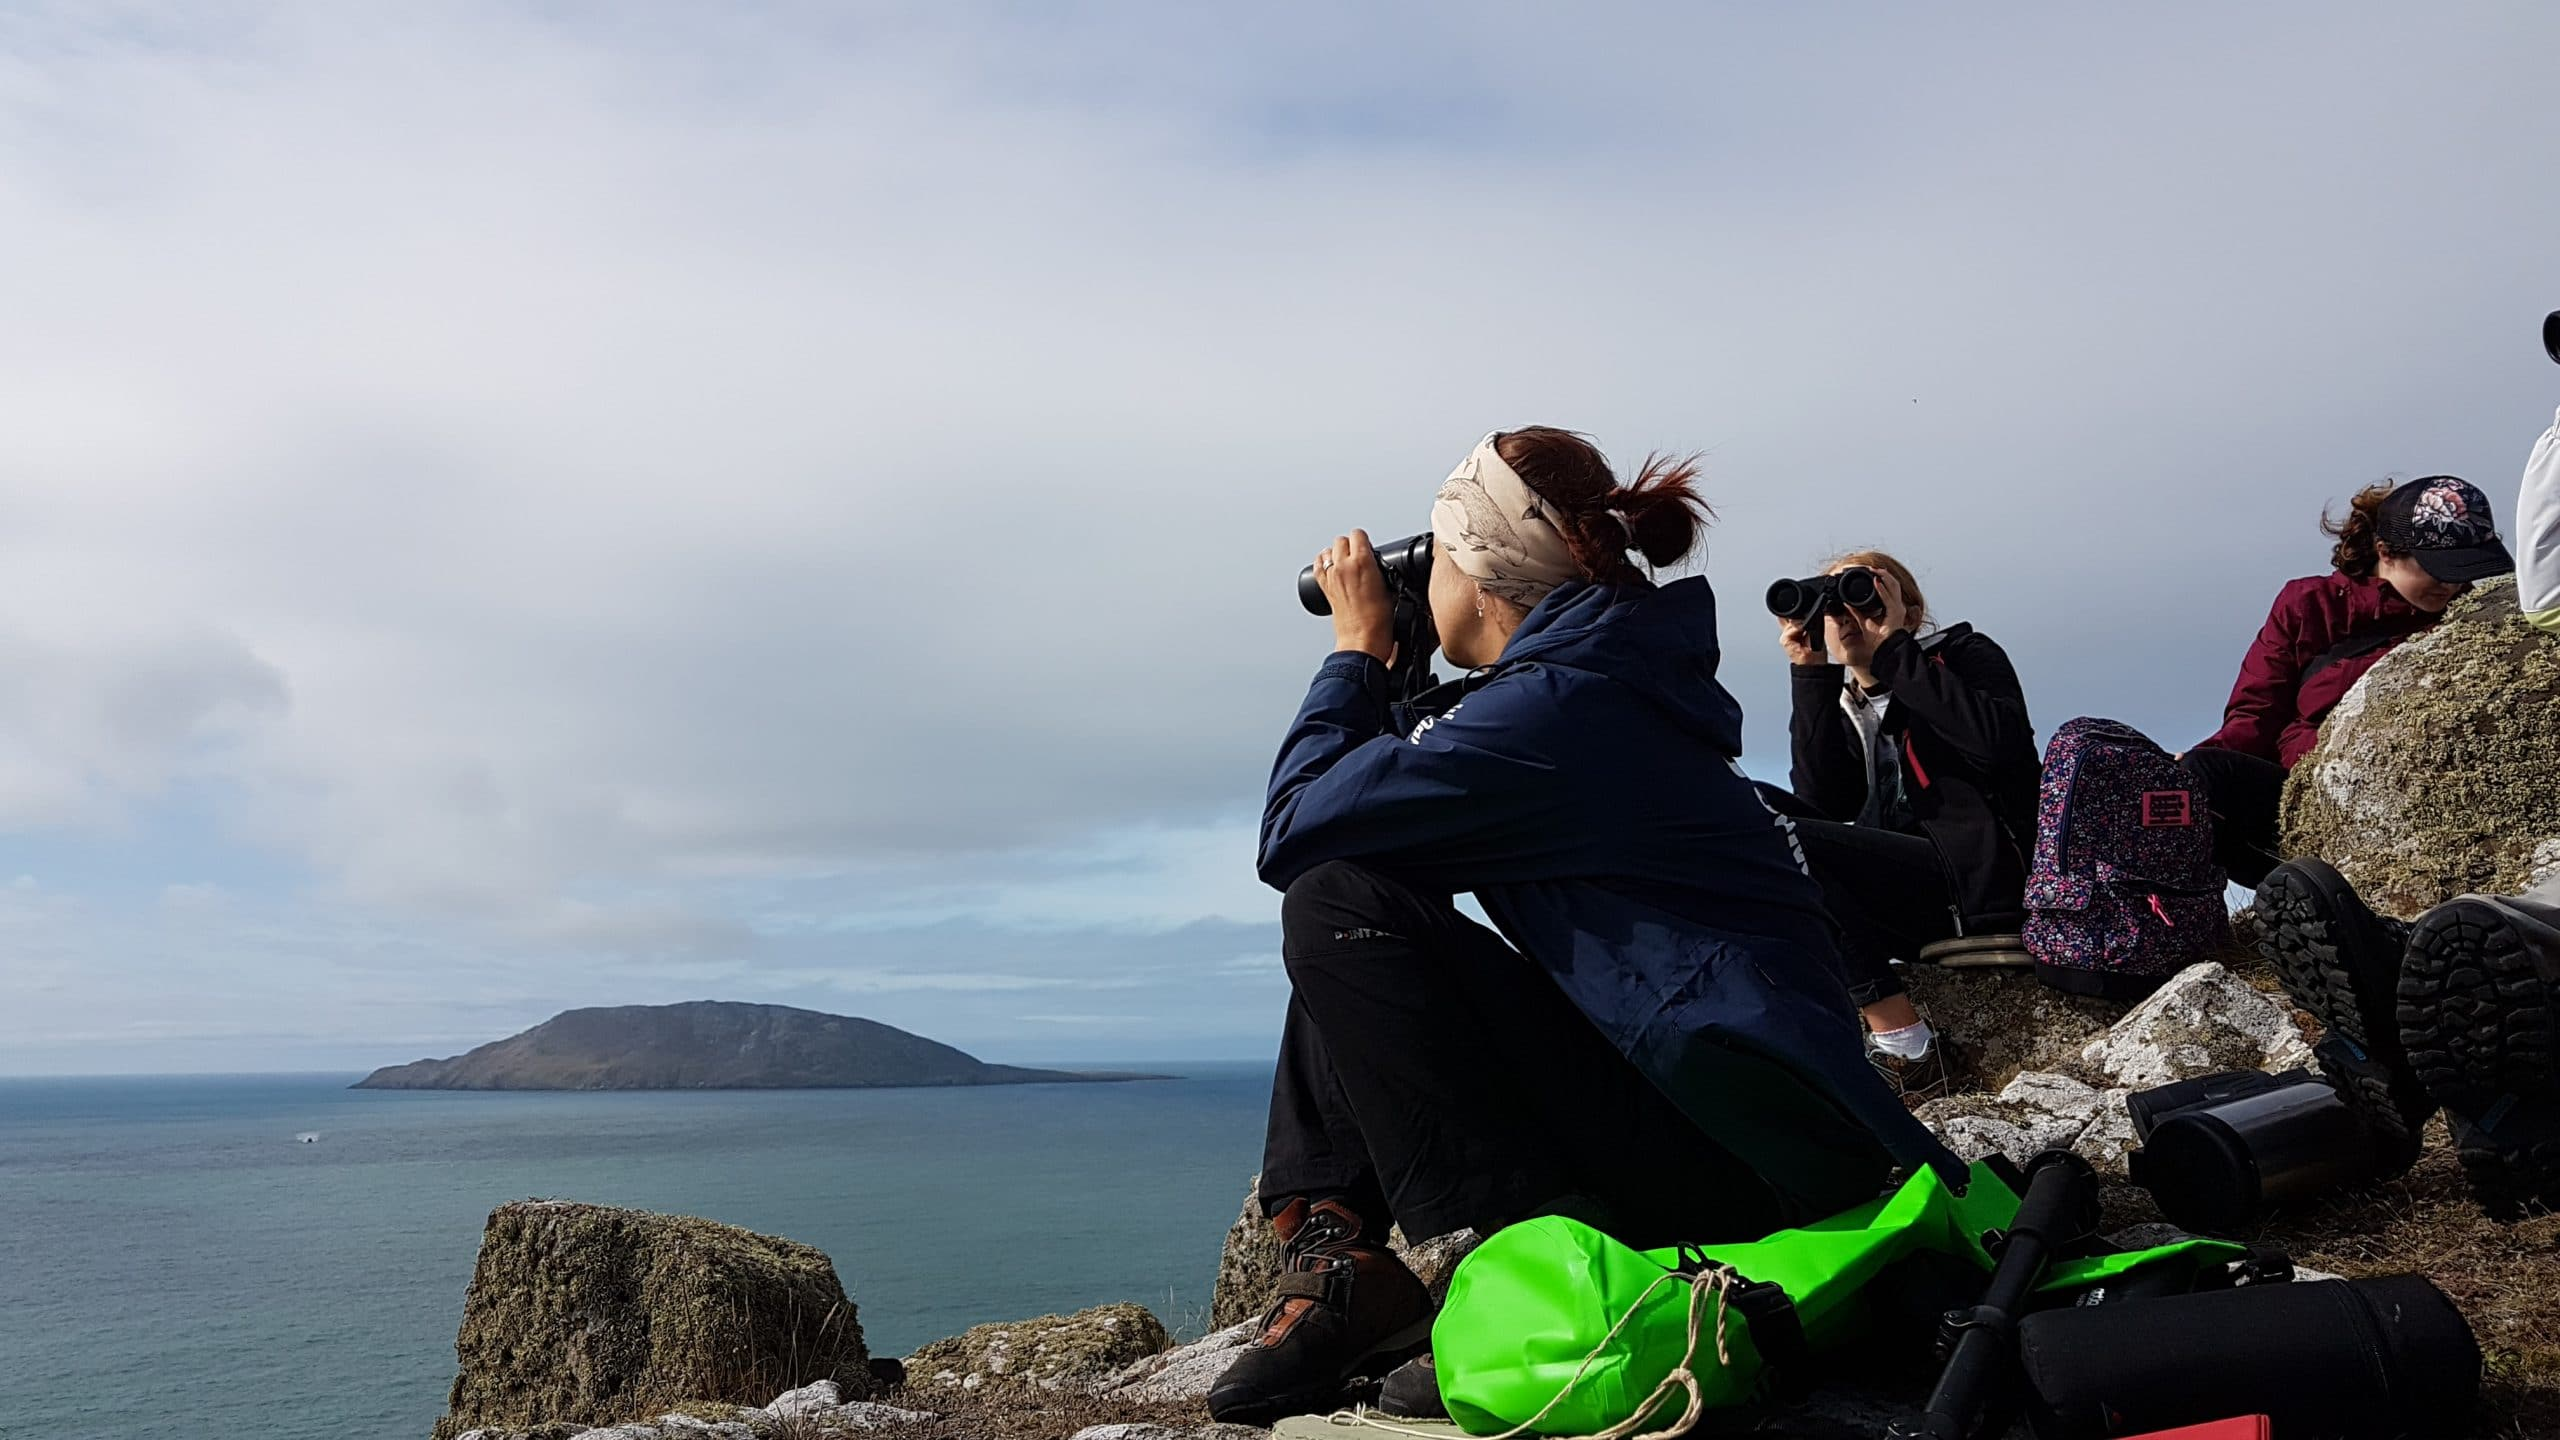 The mystical island of Bardsey enchanted us from our viewpoint